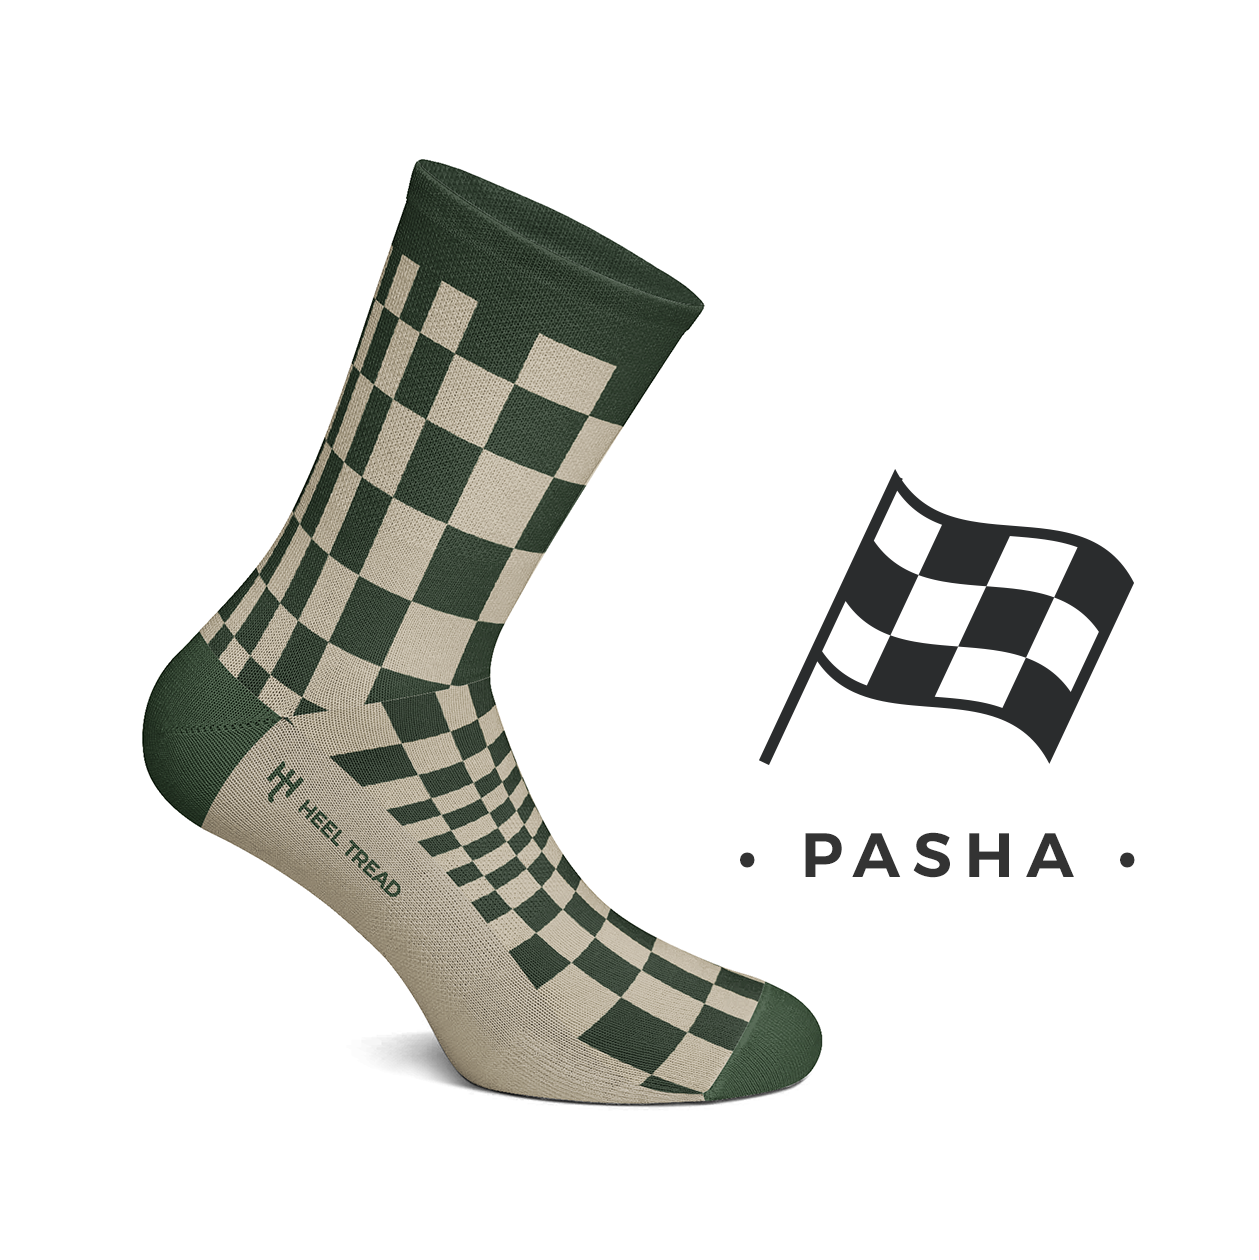 Heel Tread - Pasha Olive/Tan Socks